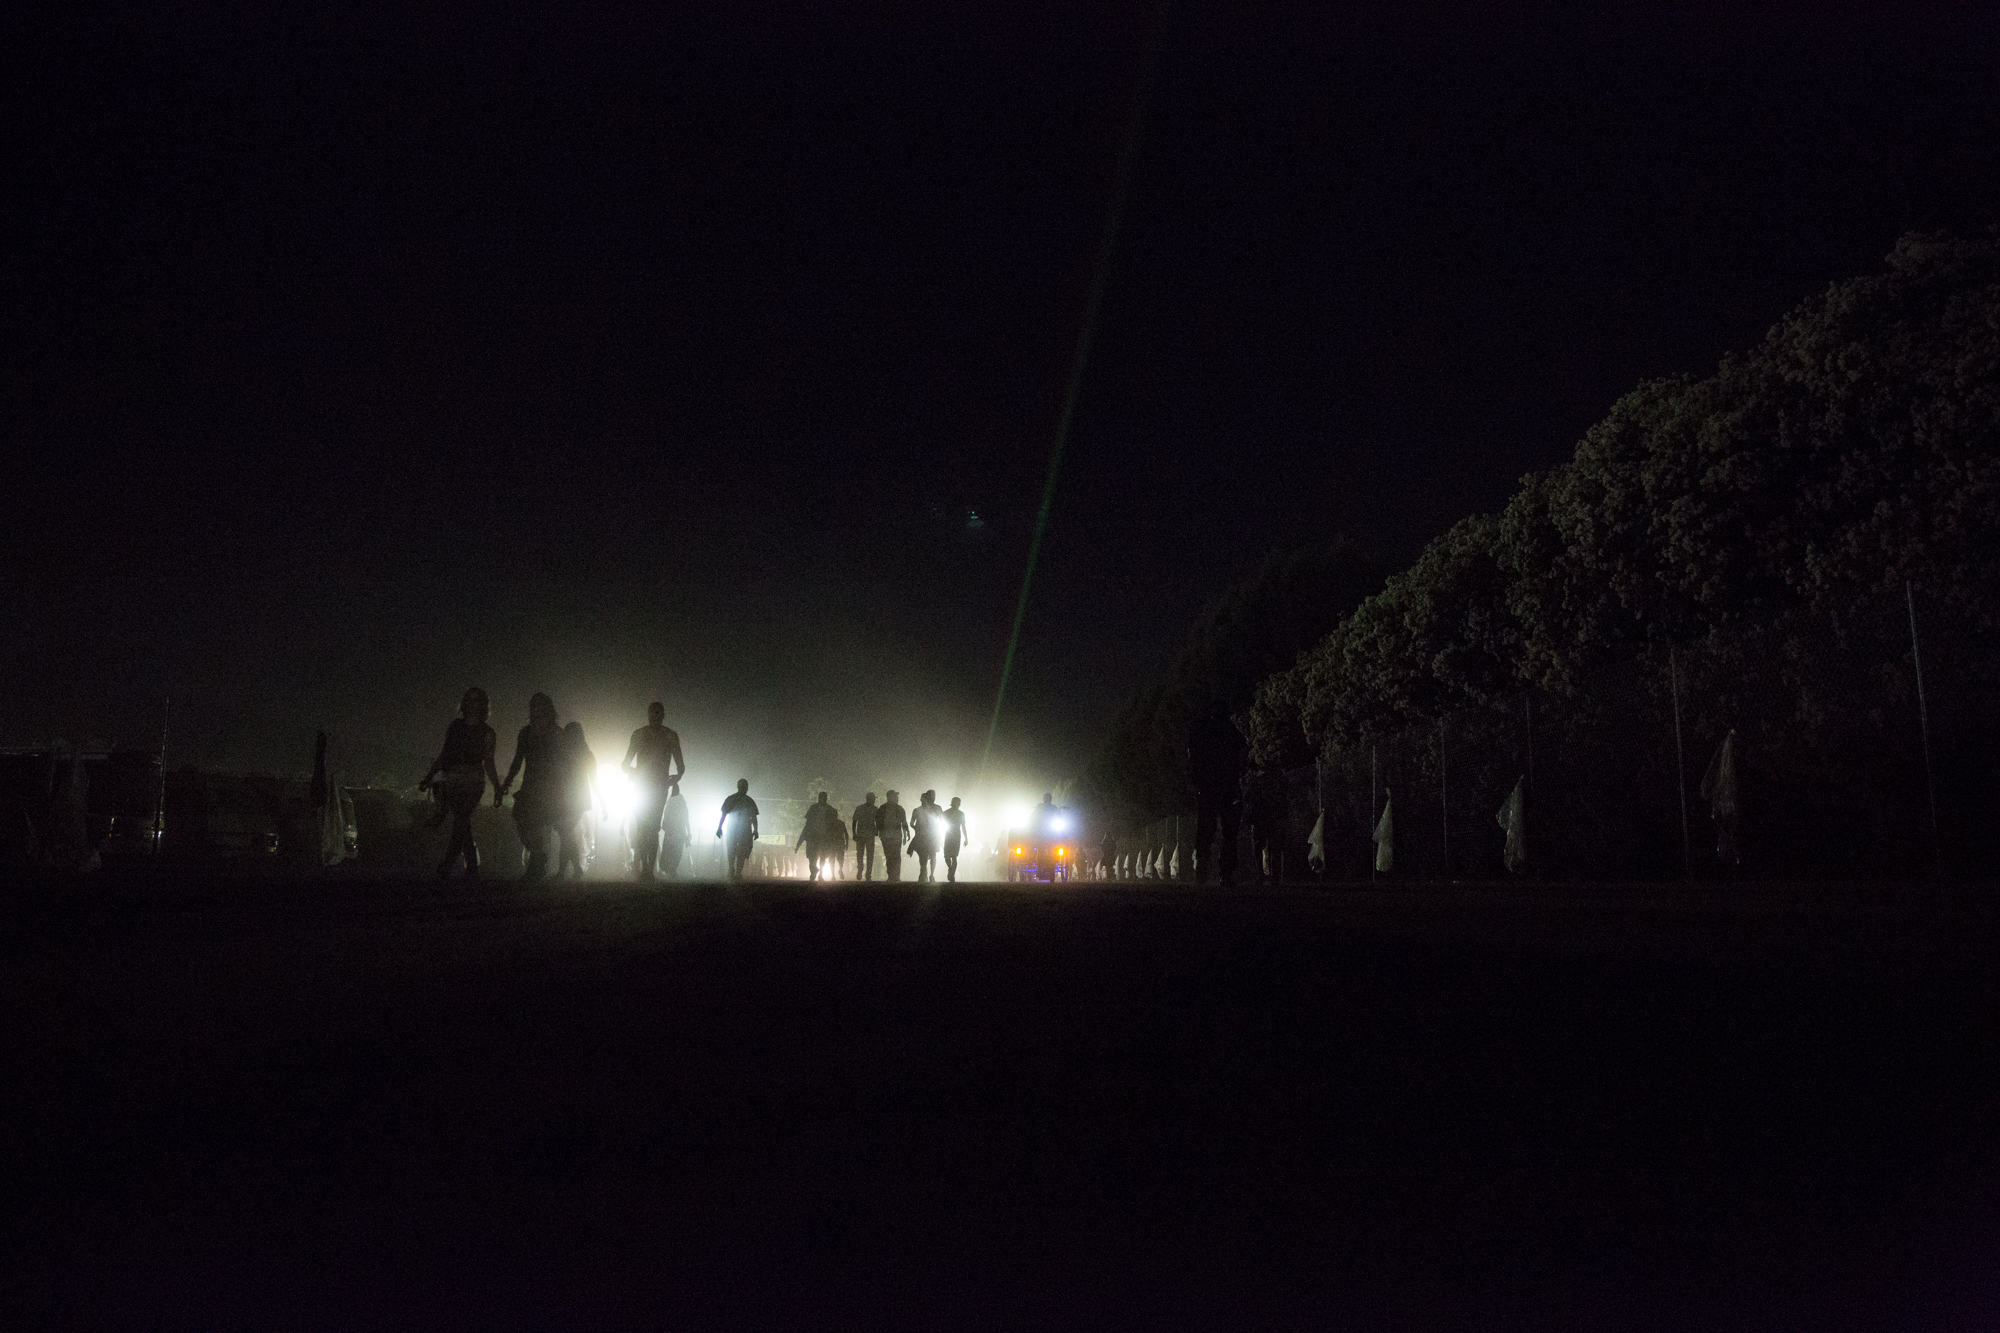 Festival-goers walk through the grounds on Friday night weekend two at Coachella.